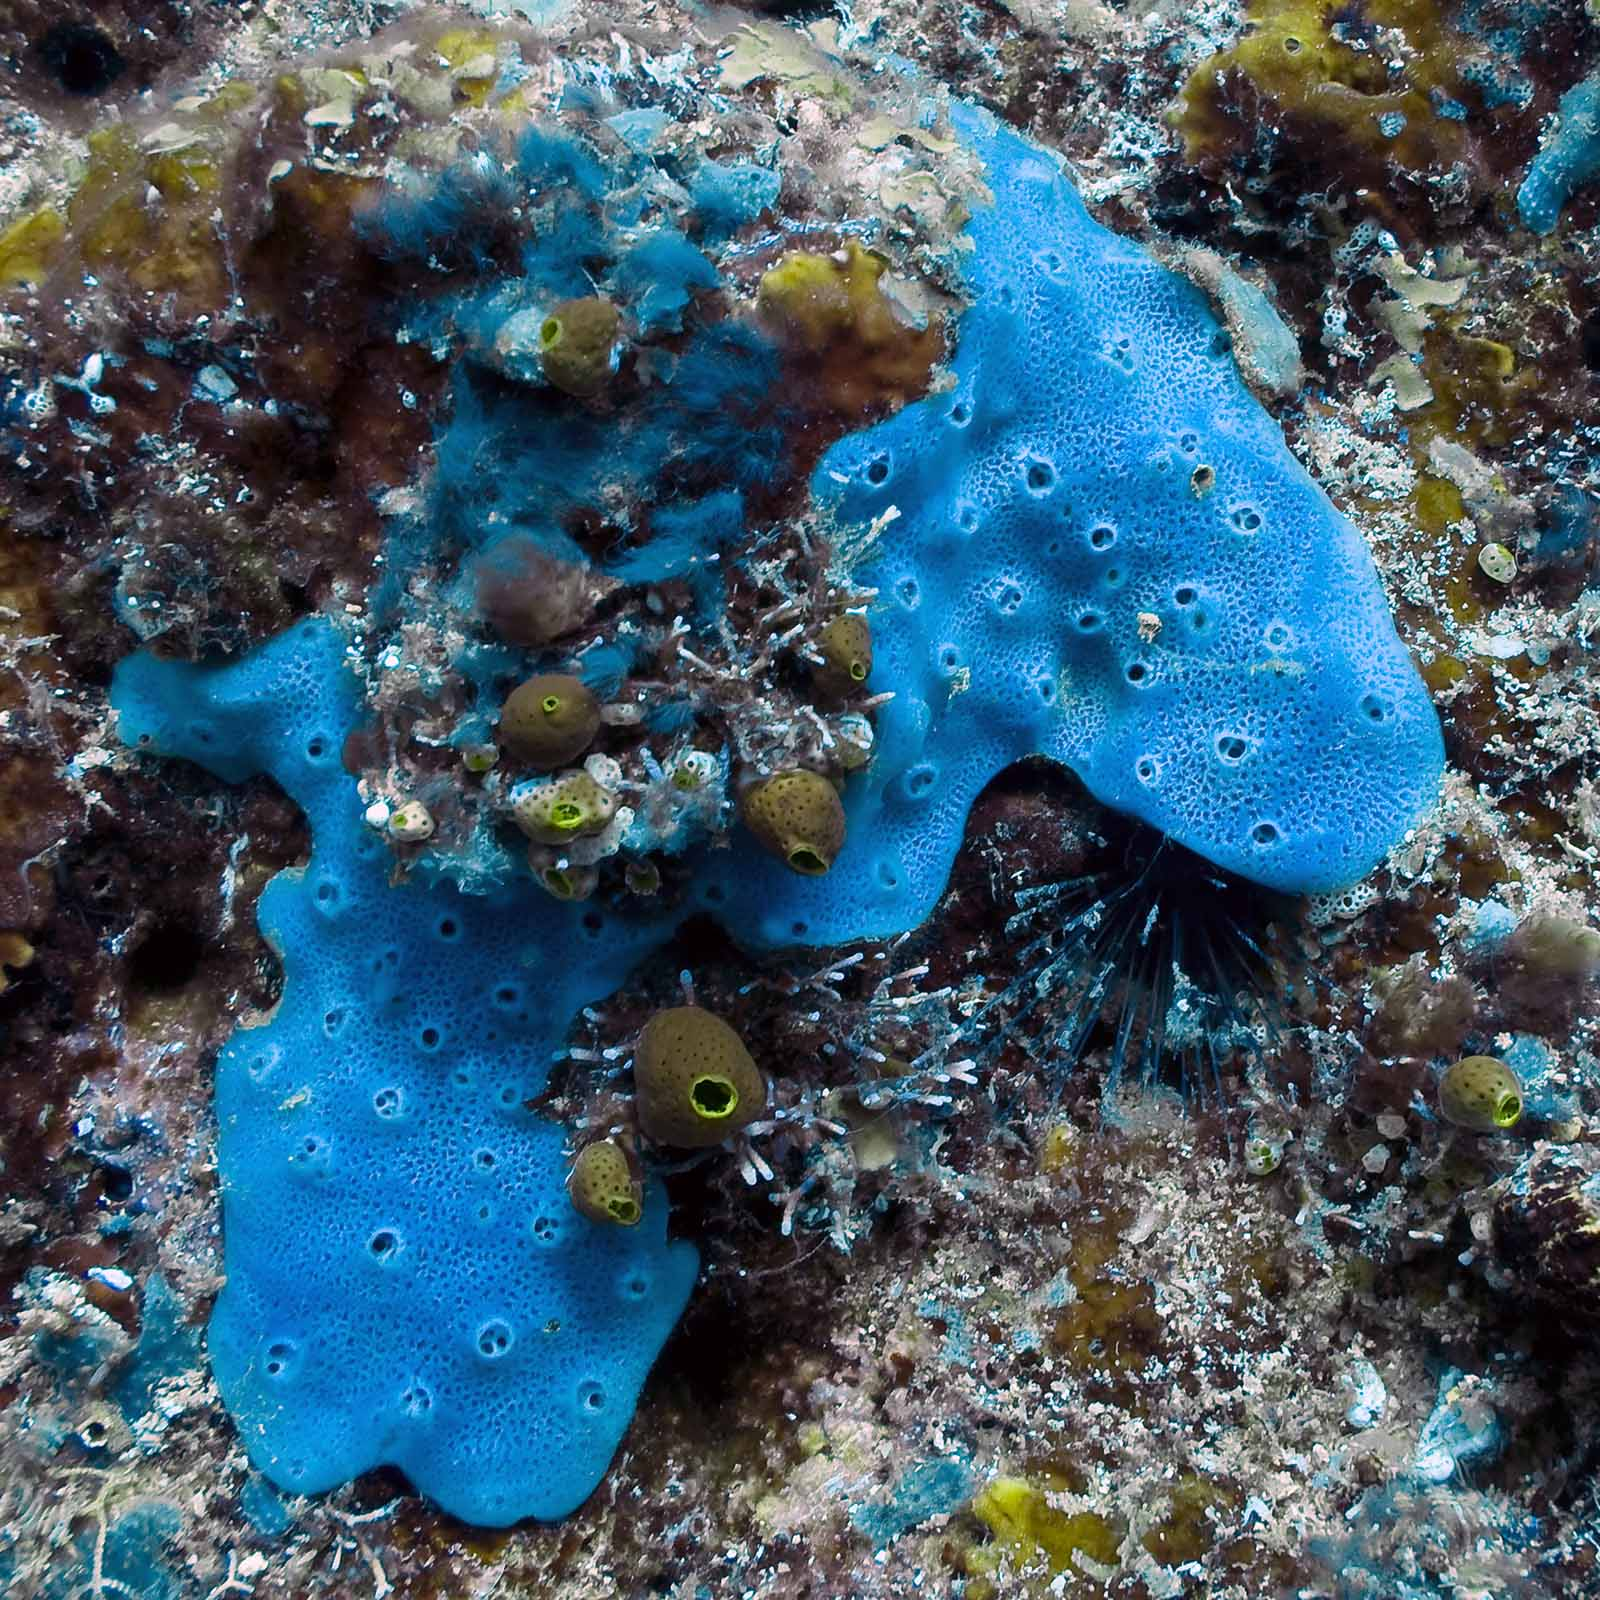 Encrusting Sponge This is a beautiful Blue